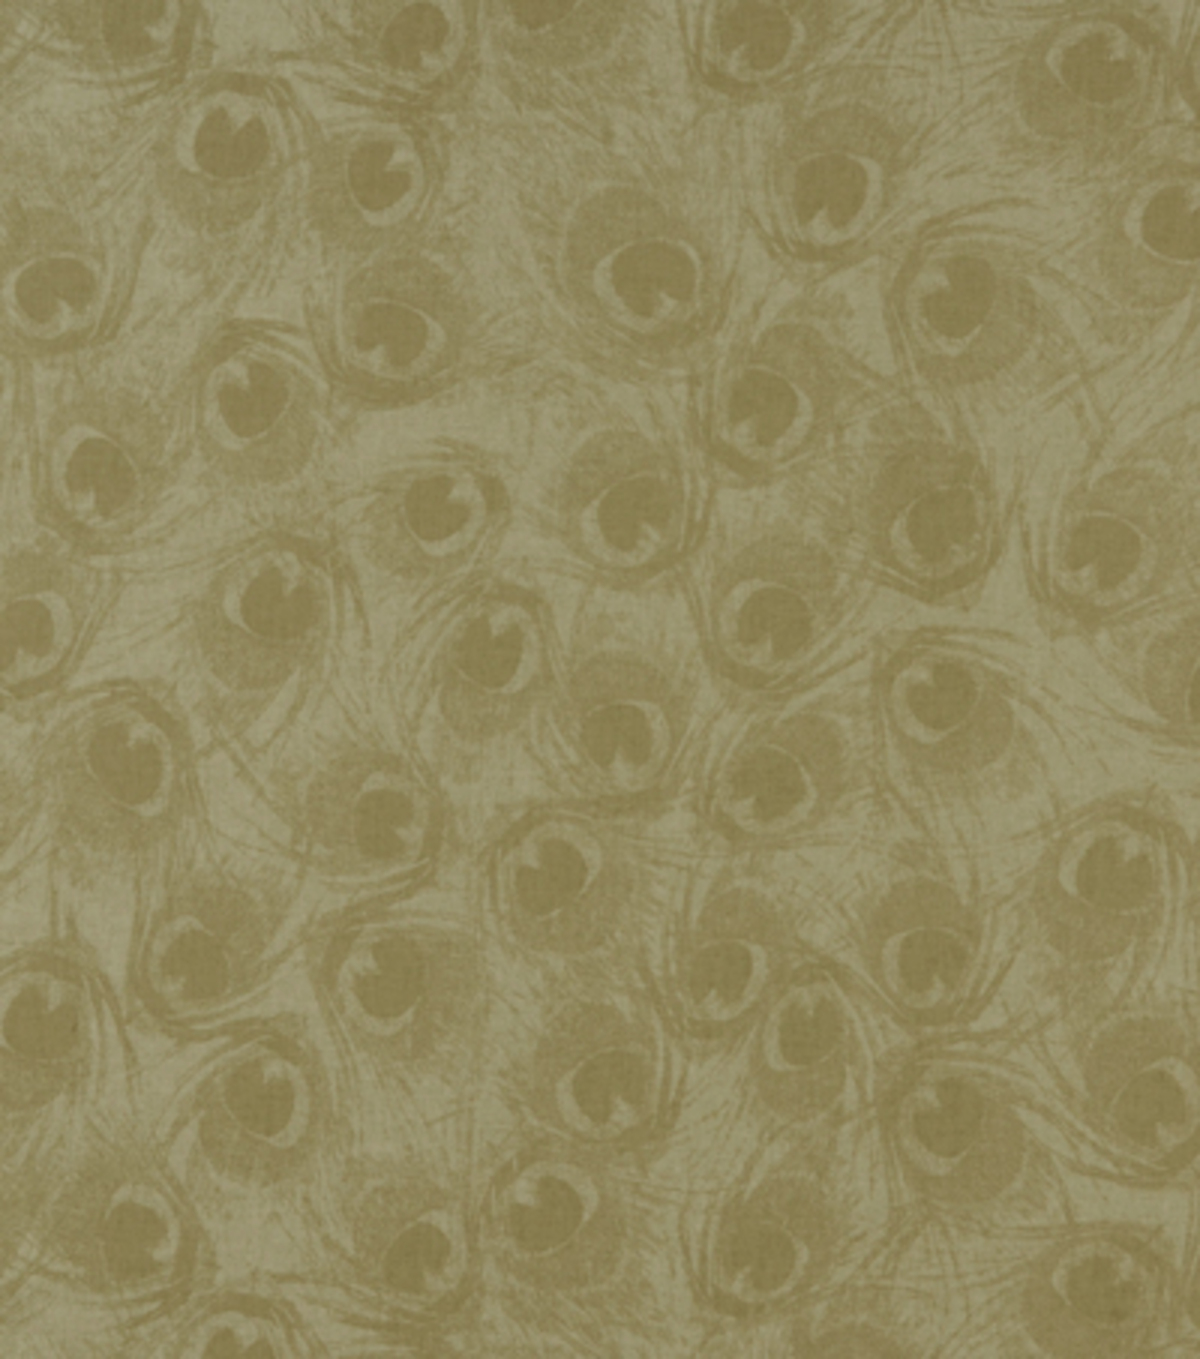 Home Decor 8\u0022x8\u0022 Fabric Swatch-Covington Plumage 196 Linen